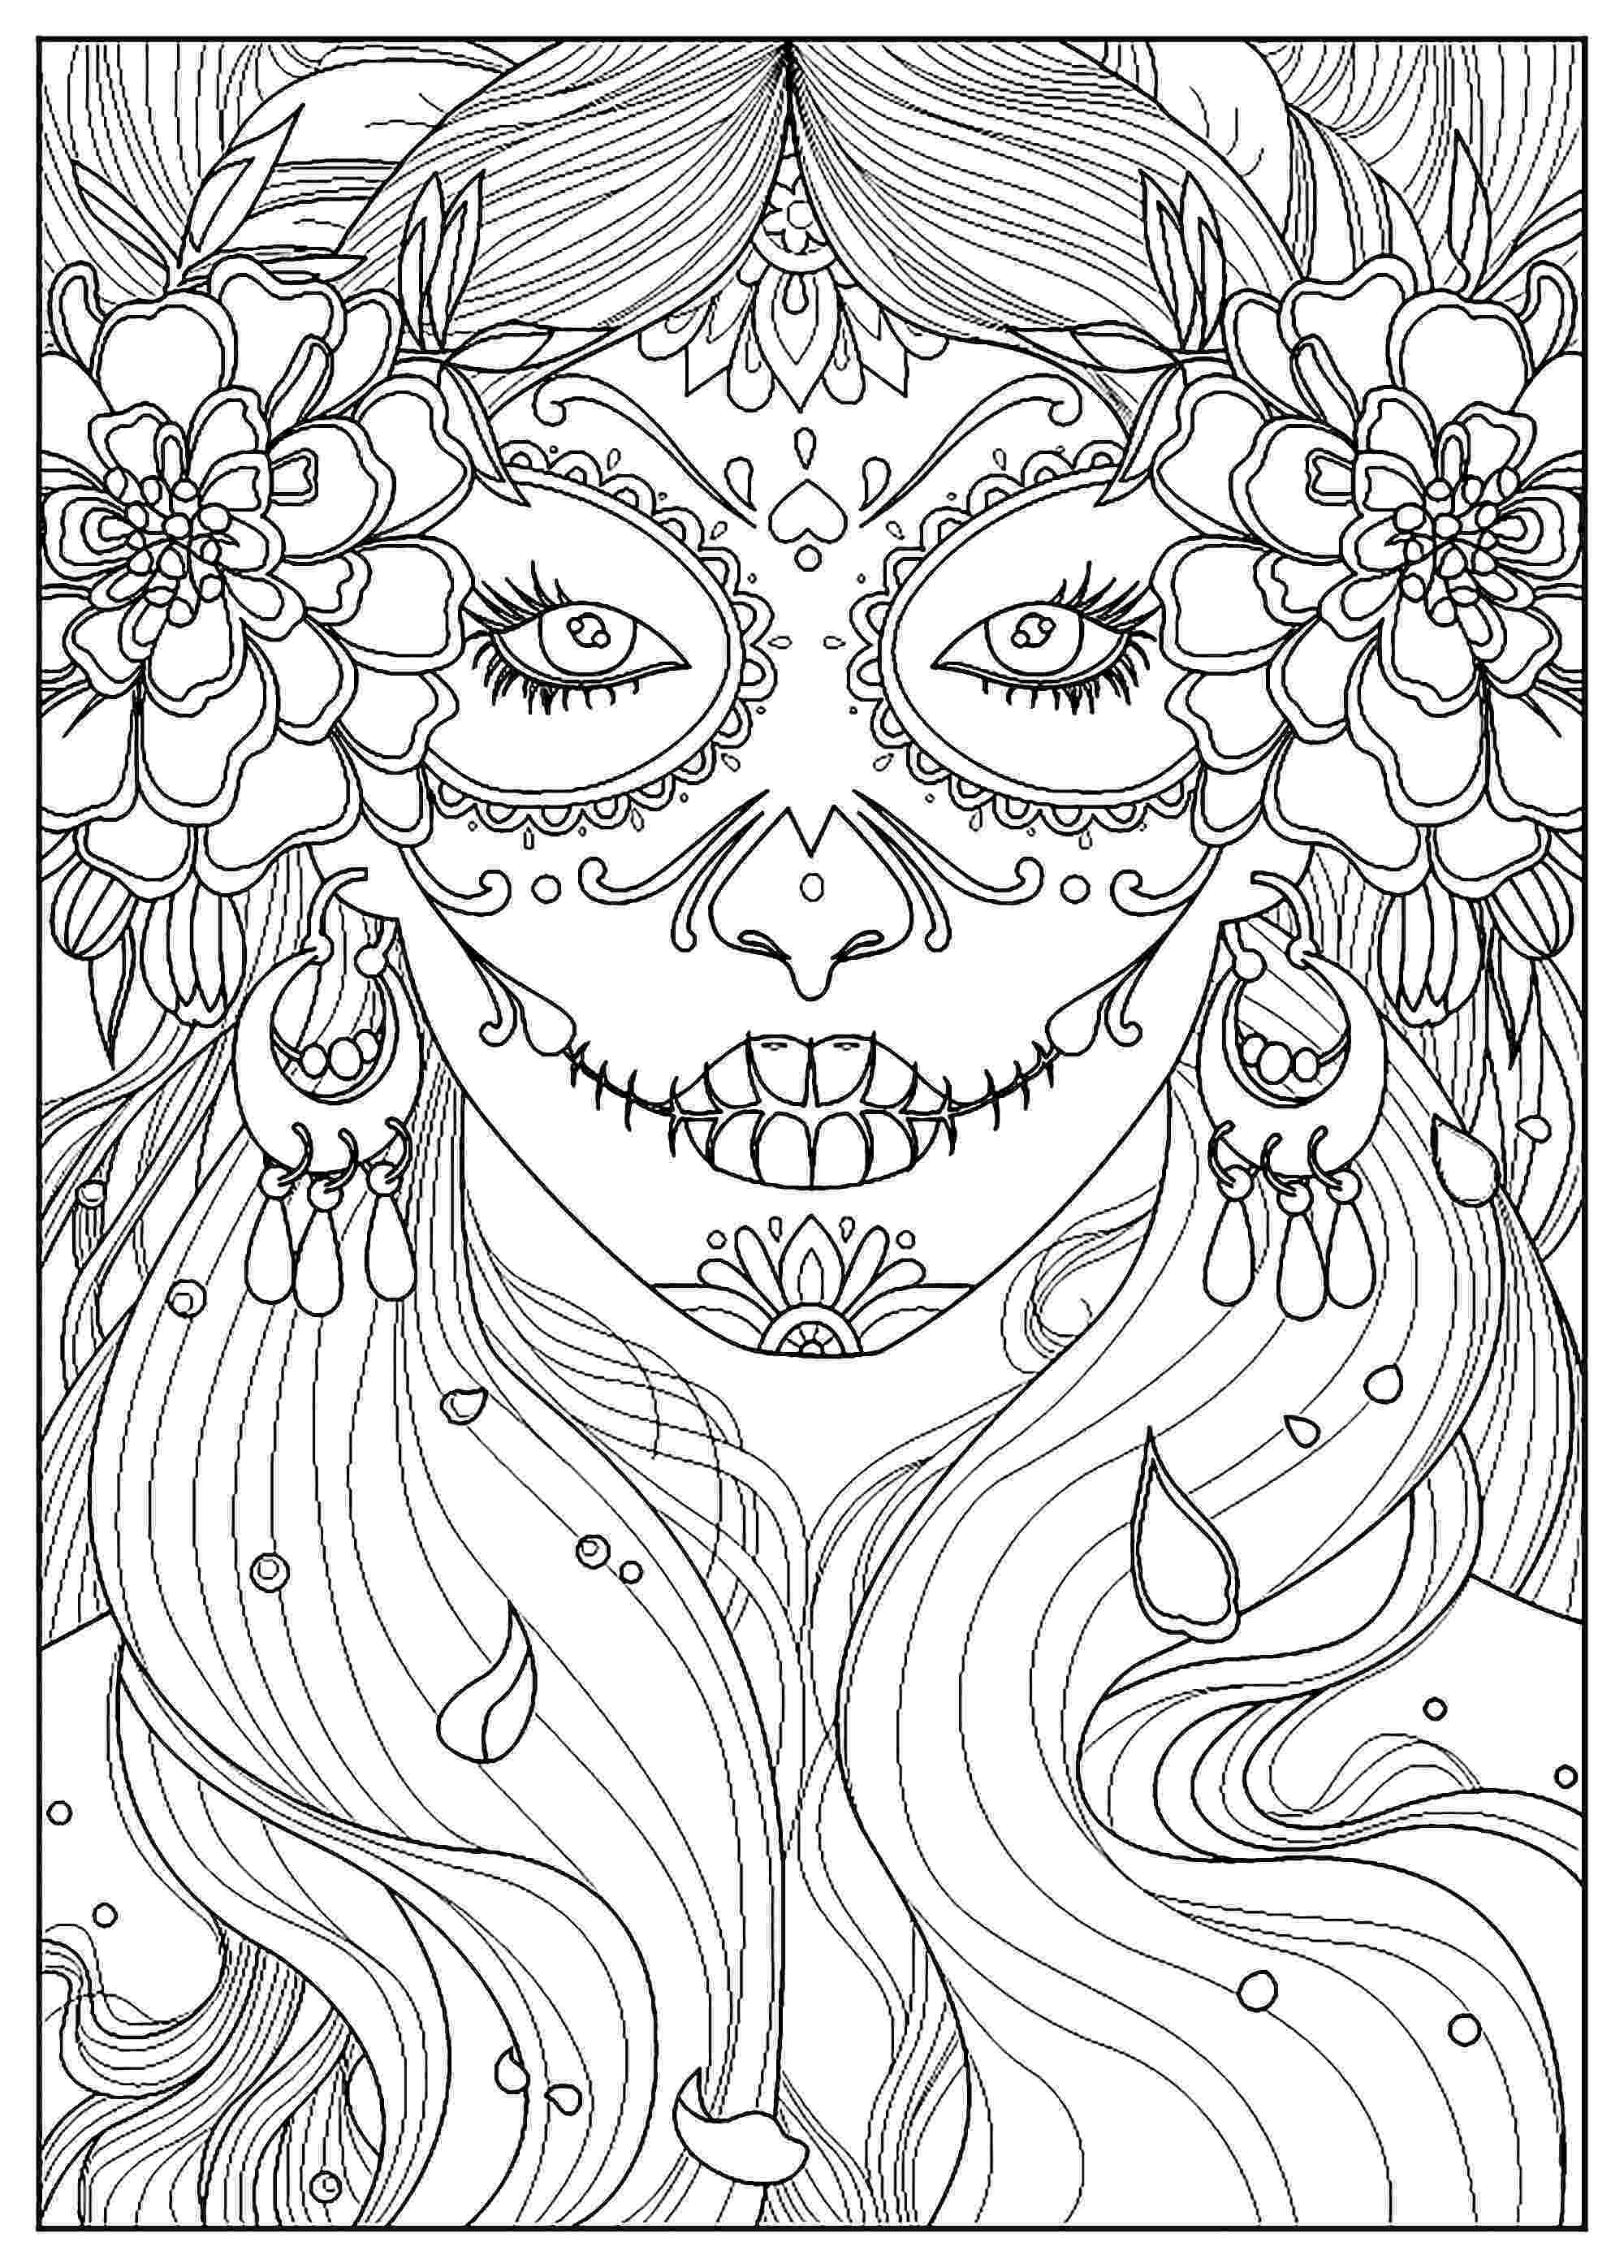 coloring book for adults beautiful day coloring inspirational quotes you are beautiful the coloring for book day adults beautiful